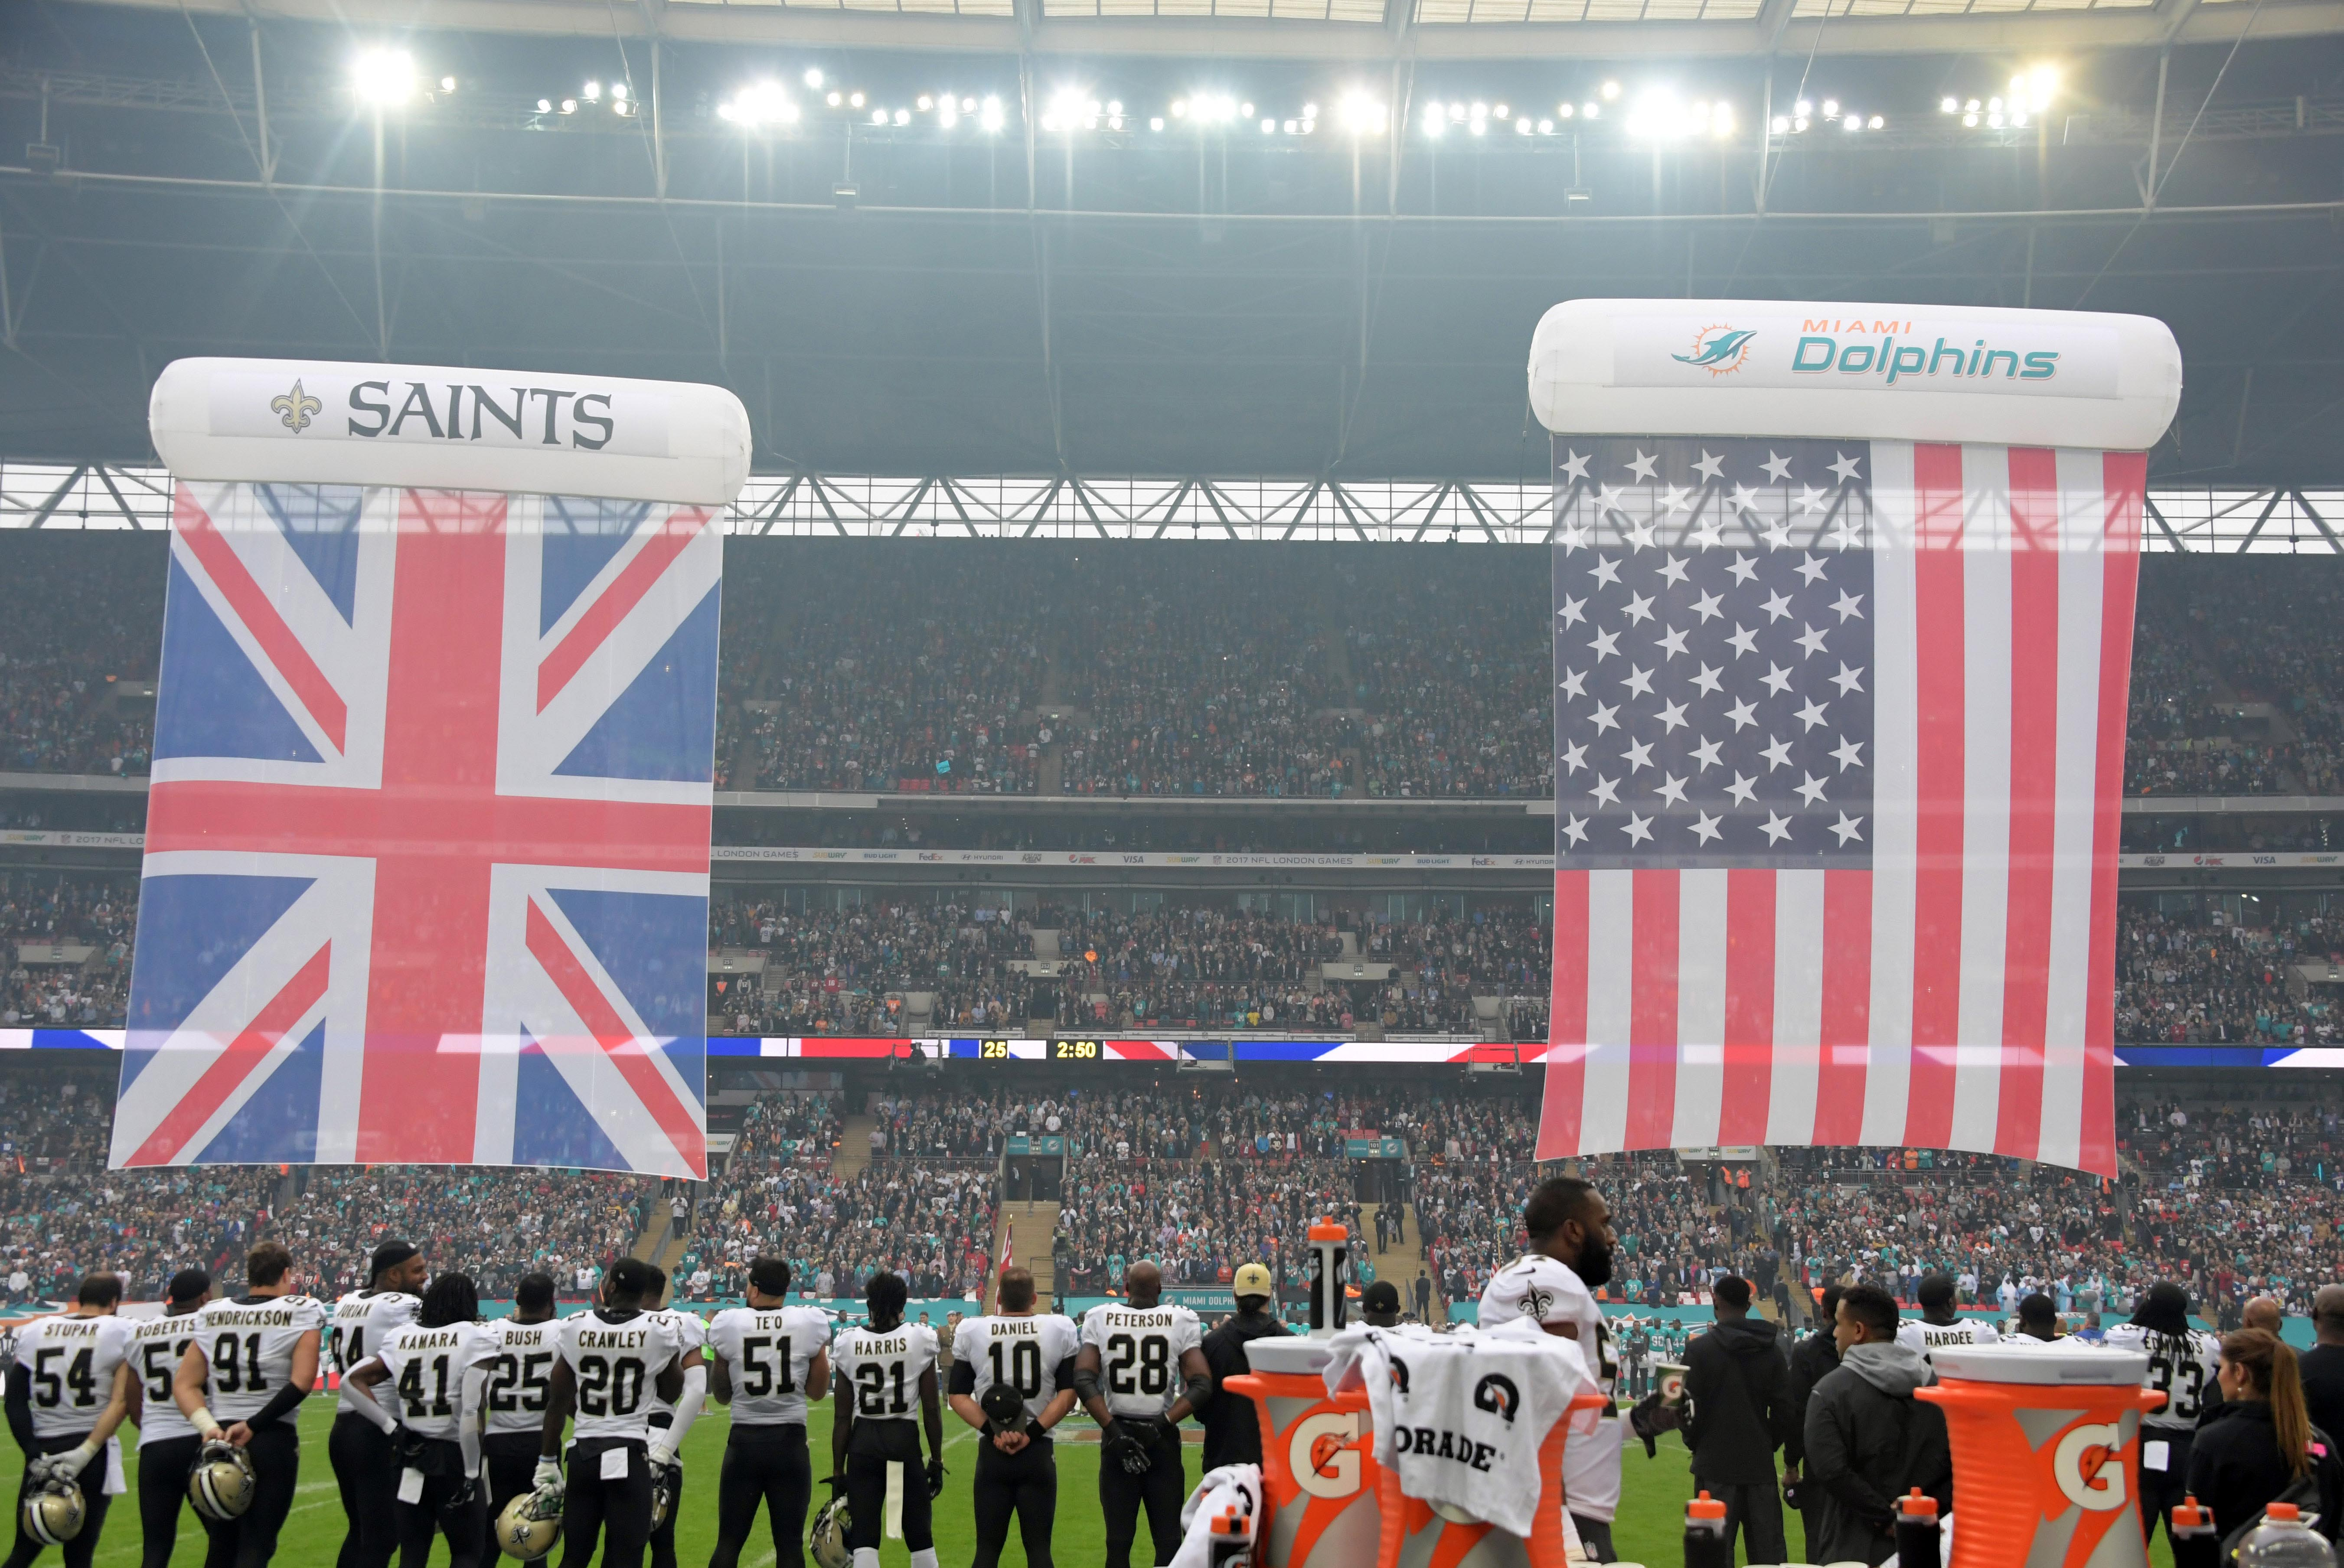 Oct 1, 2017; London, United Kingdom; New Orleans Saints players stand during the playing of the United States and British national anthems during the NFL International Series game against the Miami Dolphins  at Wembley Stadium. Mandatory Credit: Kirby Lee-USA TODAY Sports